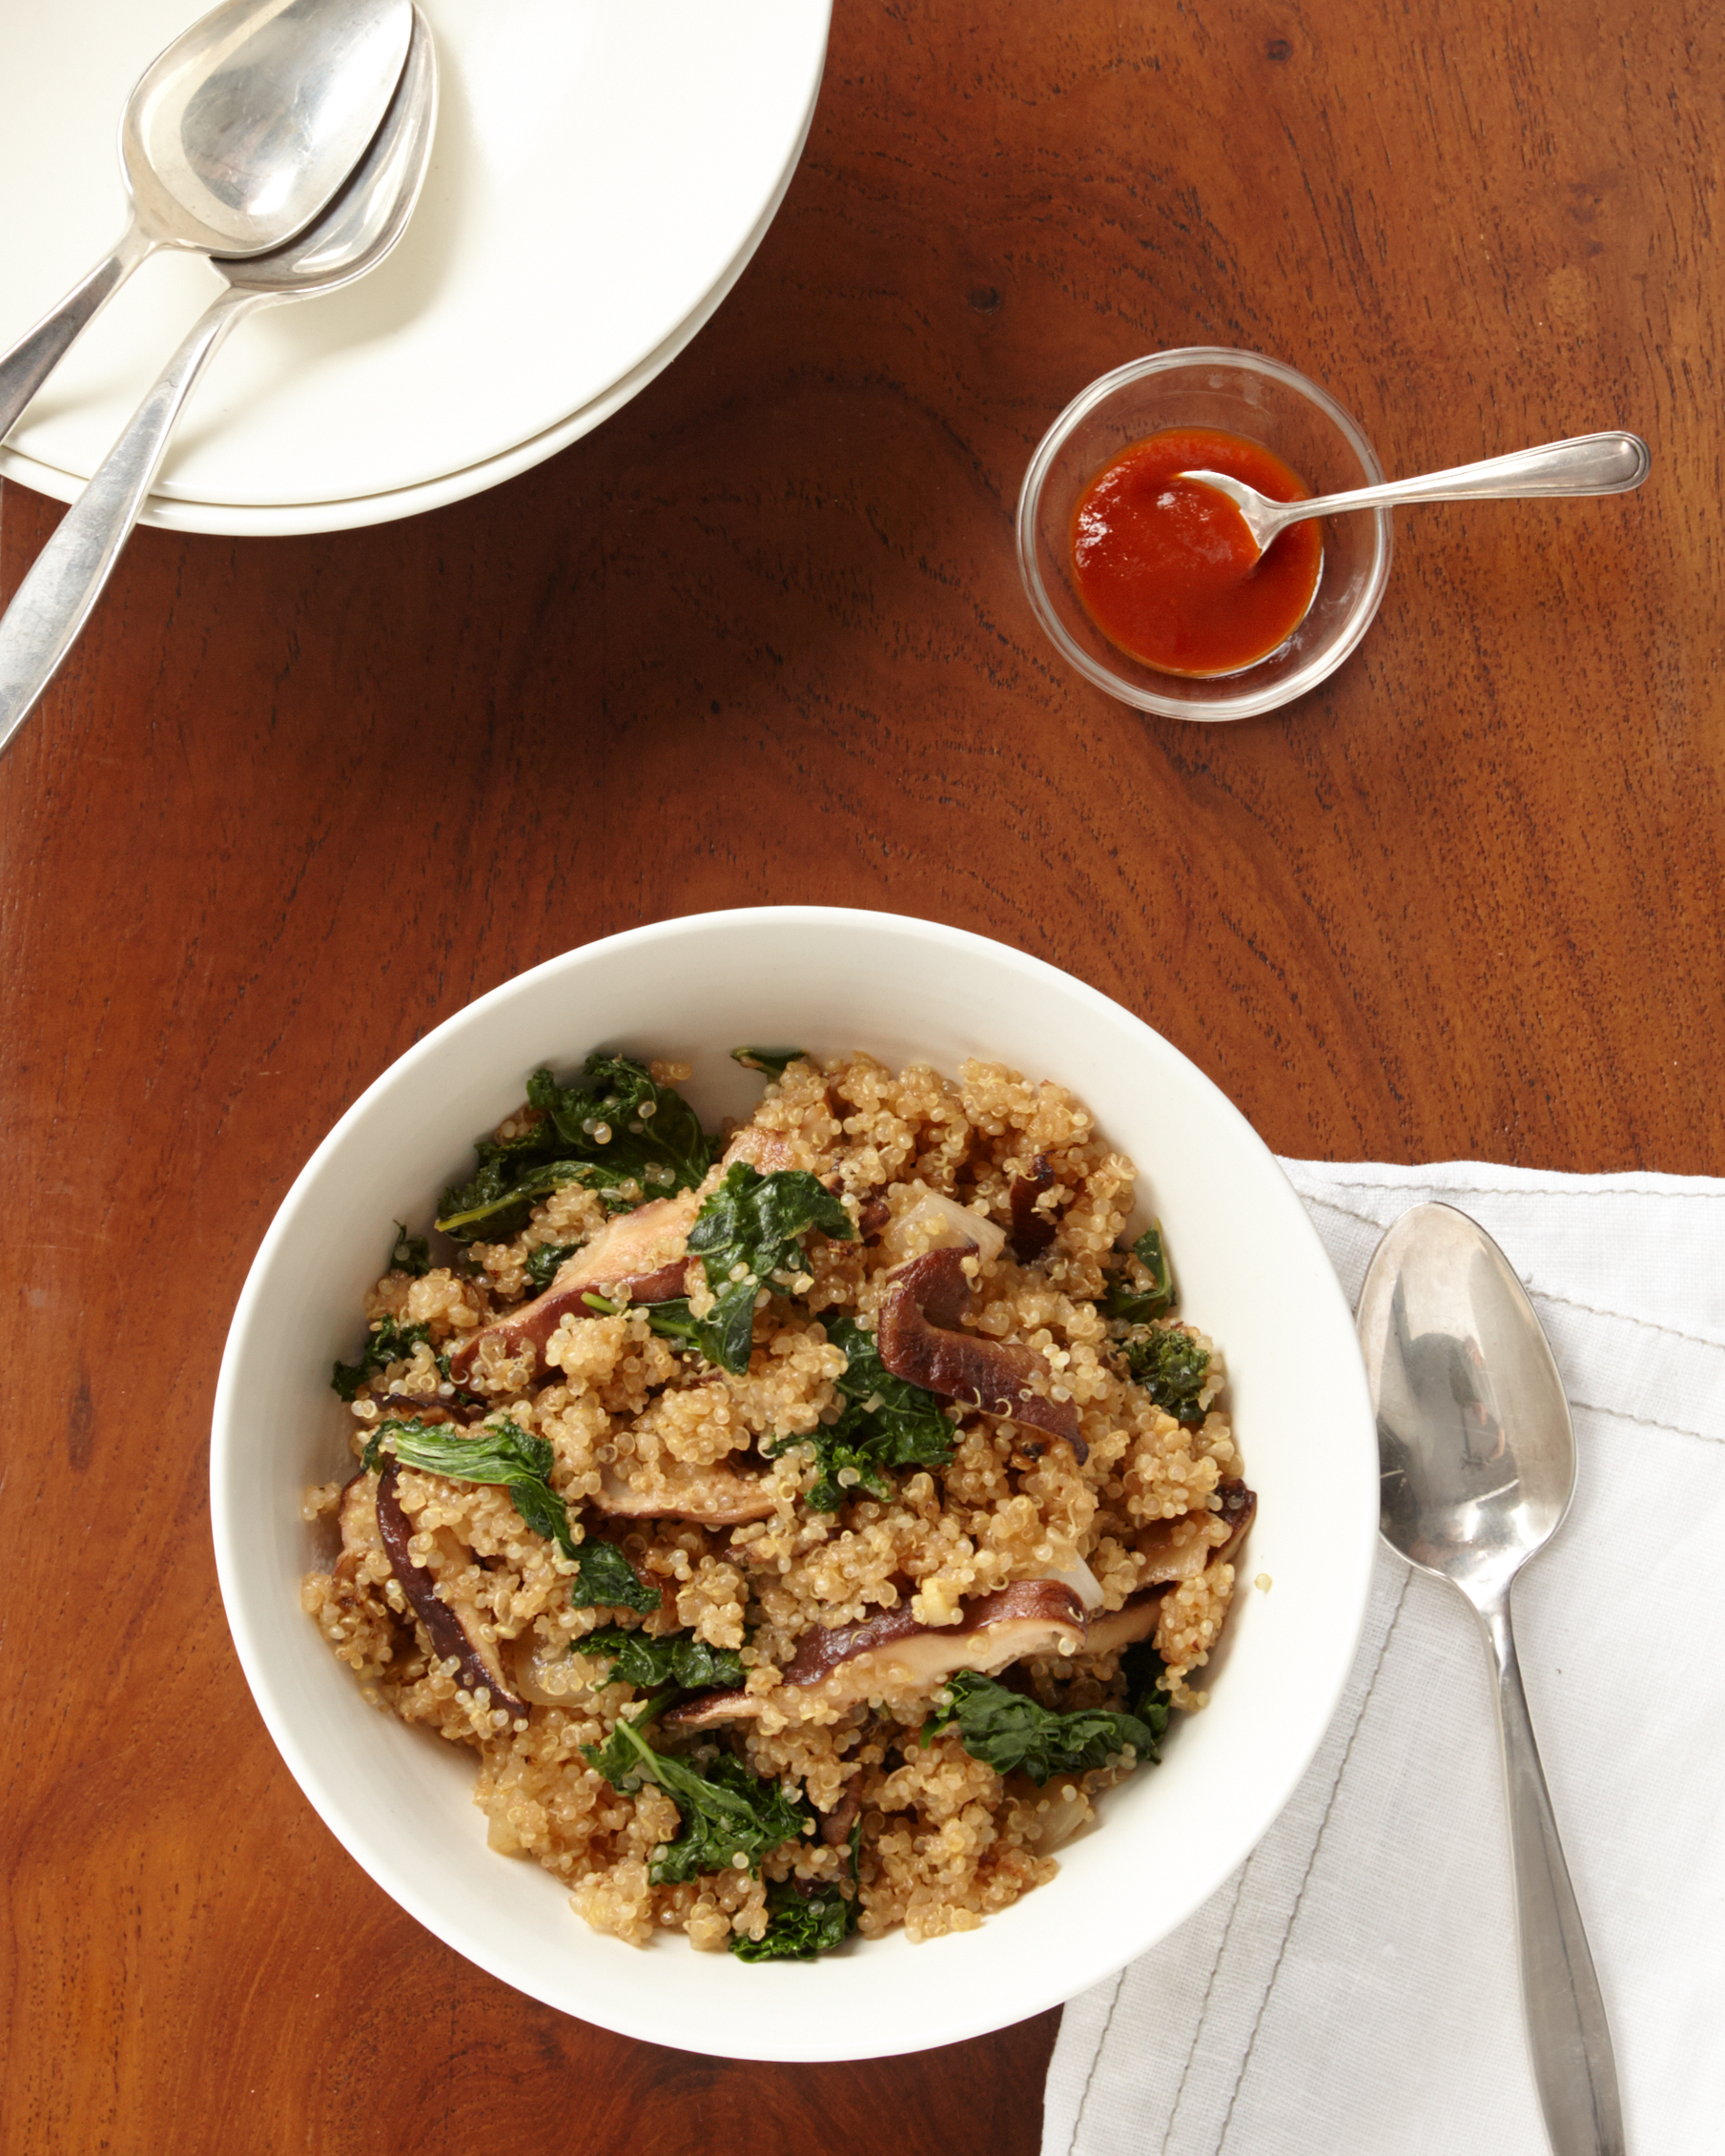 quinoa-fried-rice-0050-d112283.jpg